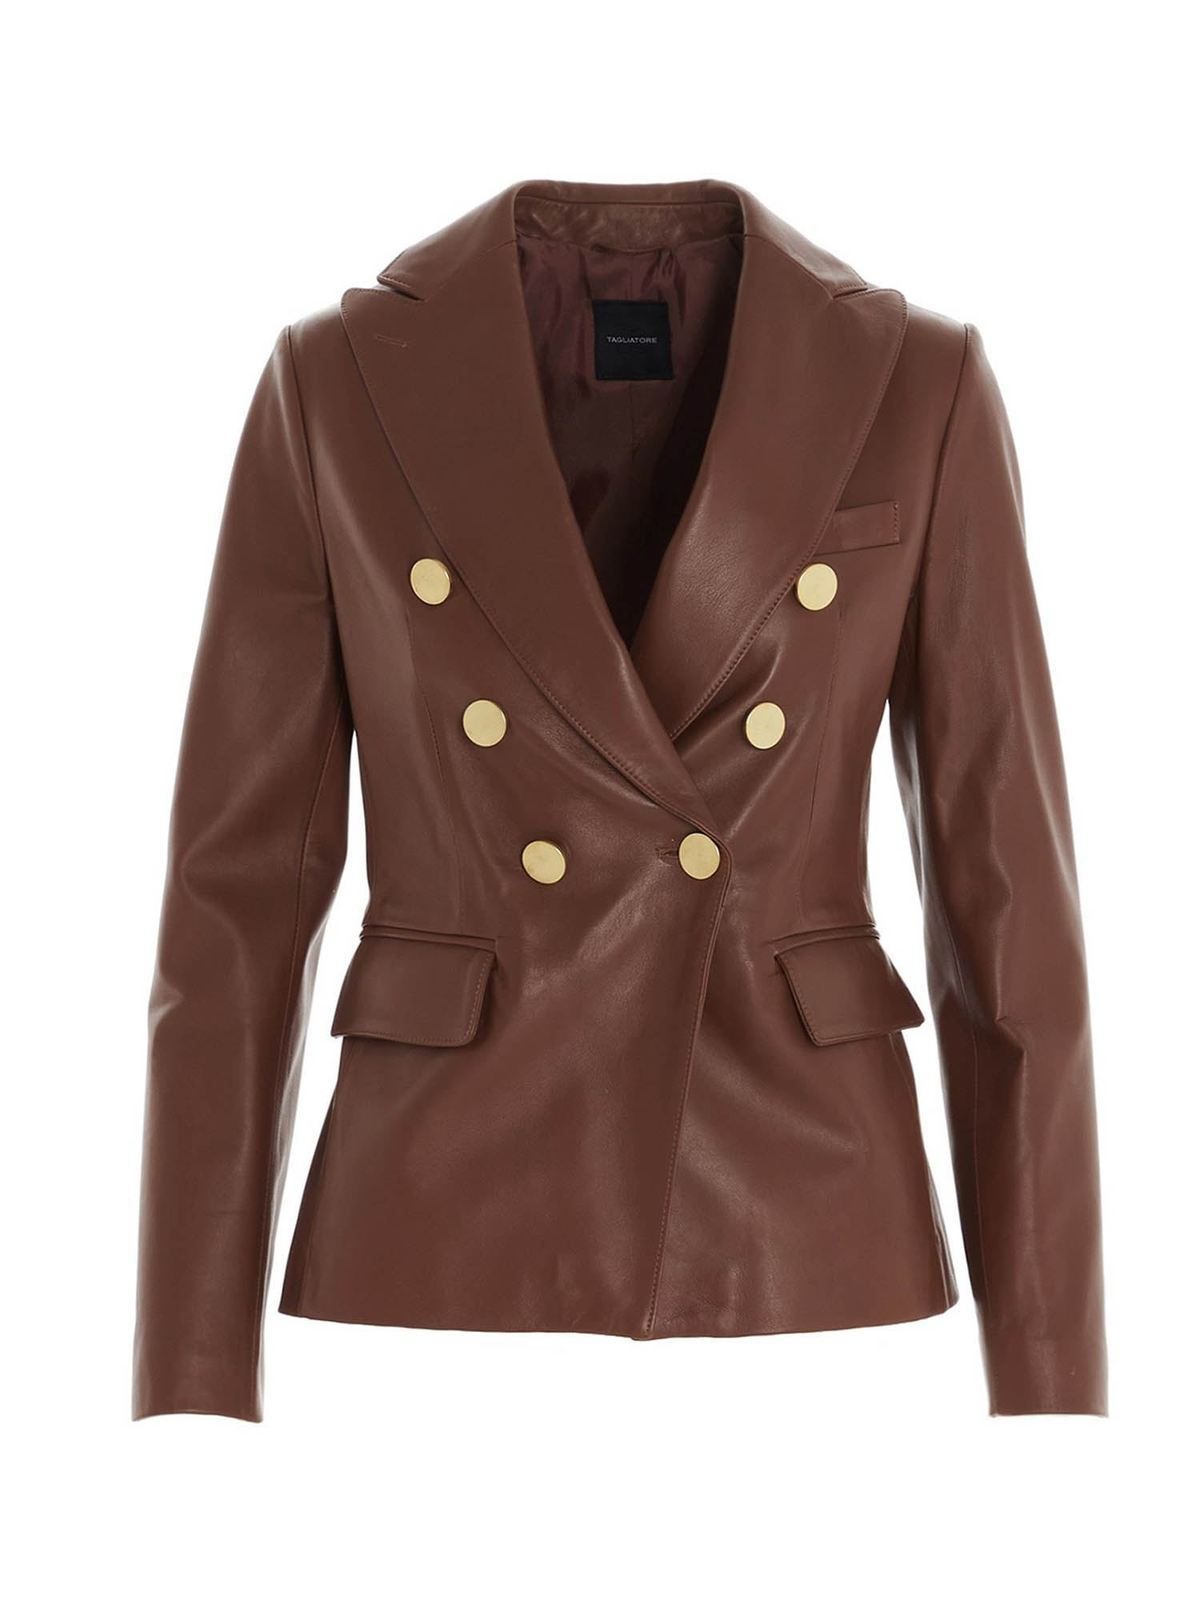 Tagliatore LIZZIE LEATHER BLAZER IN BROWN